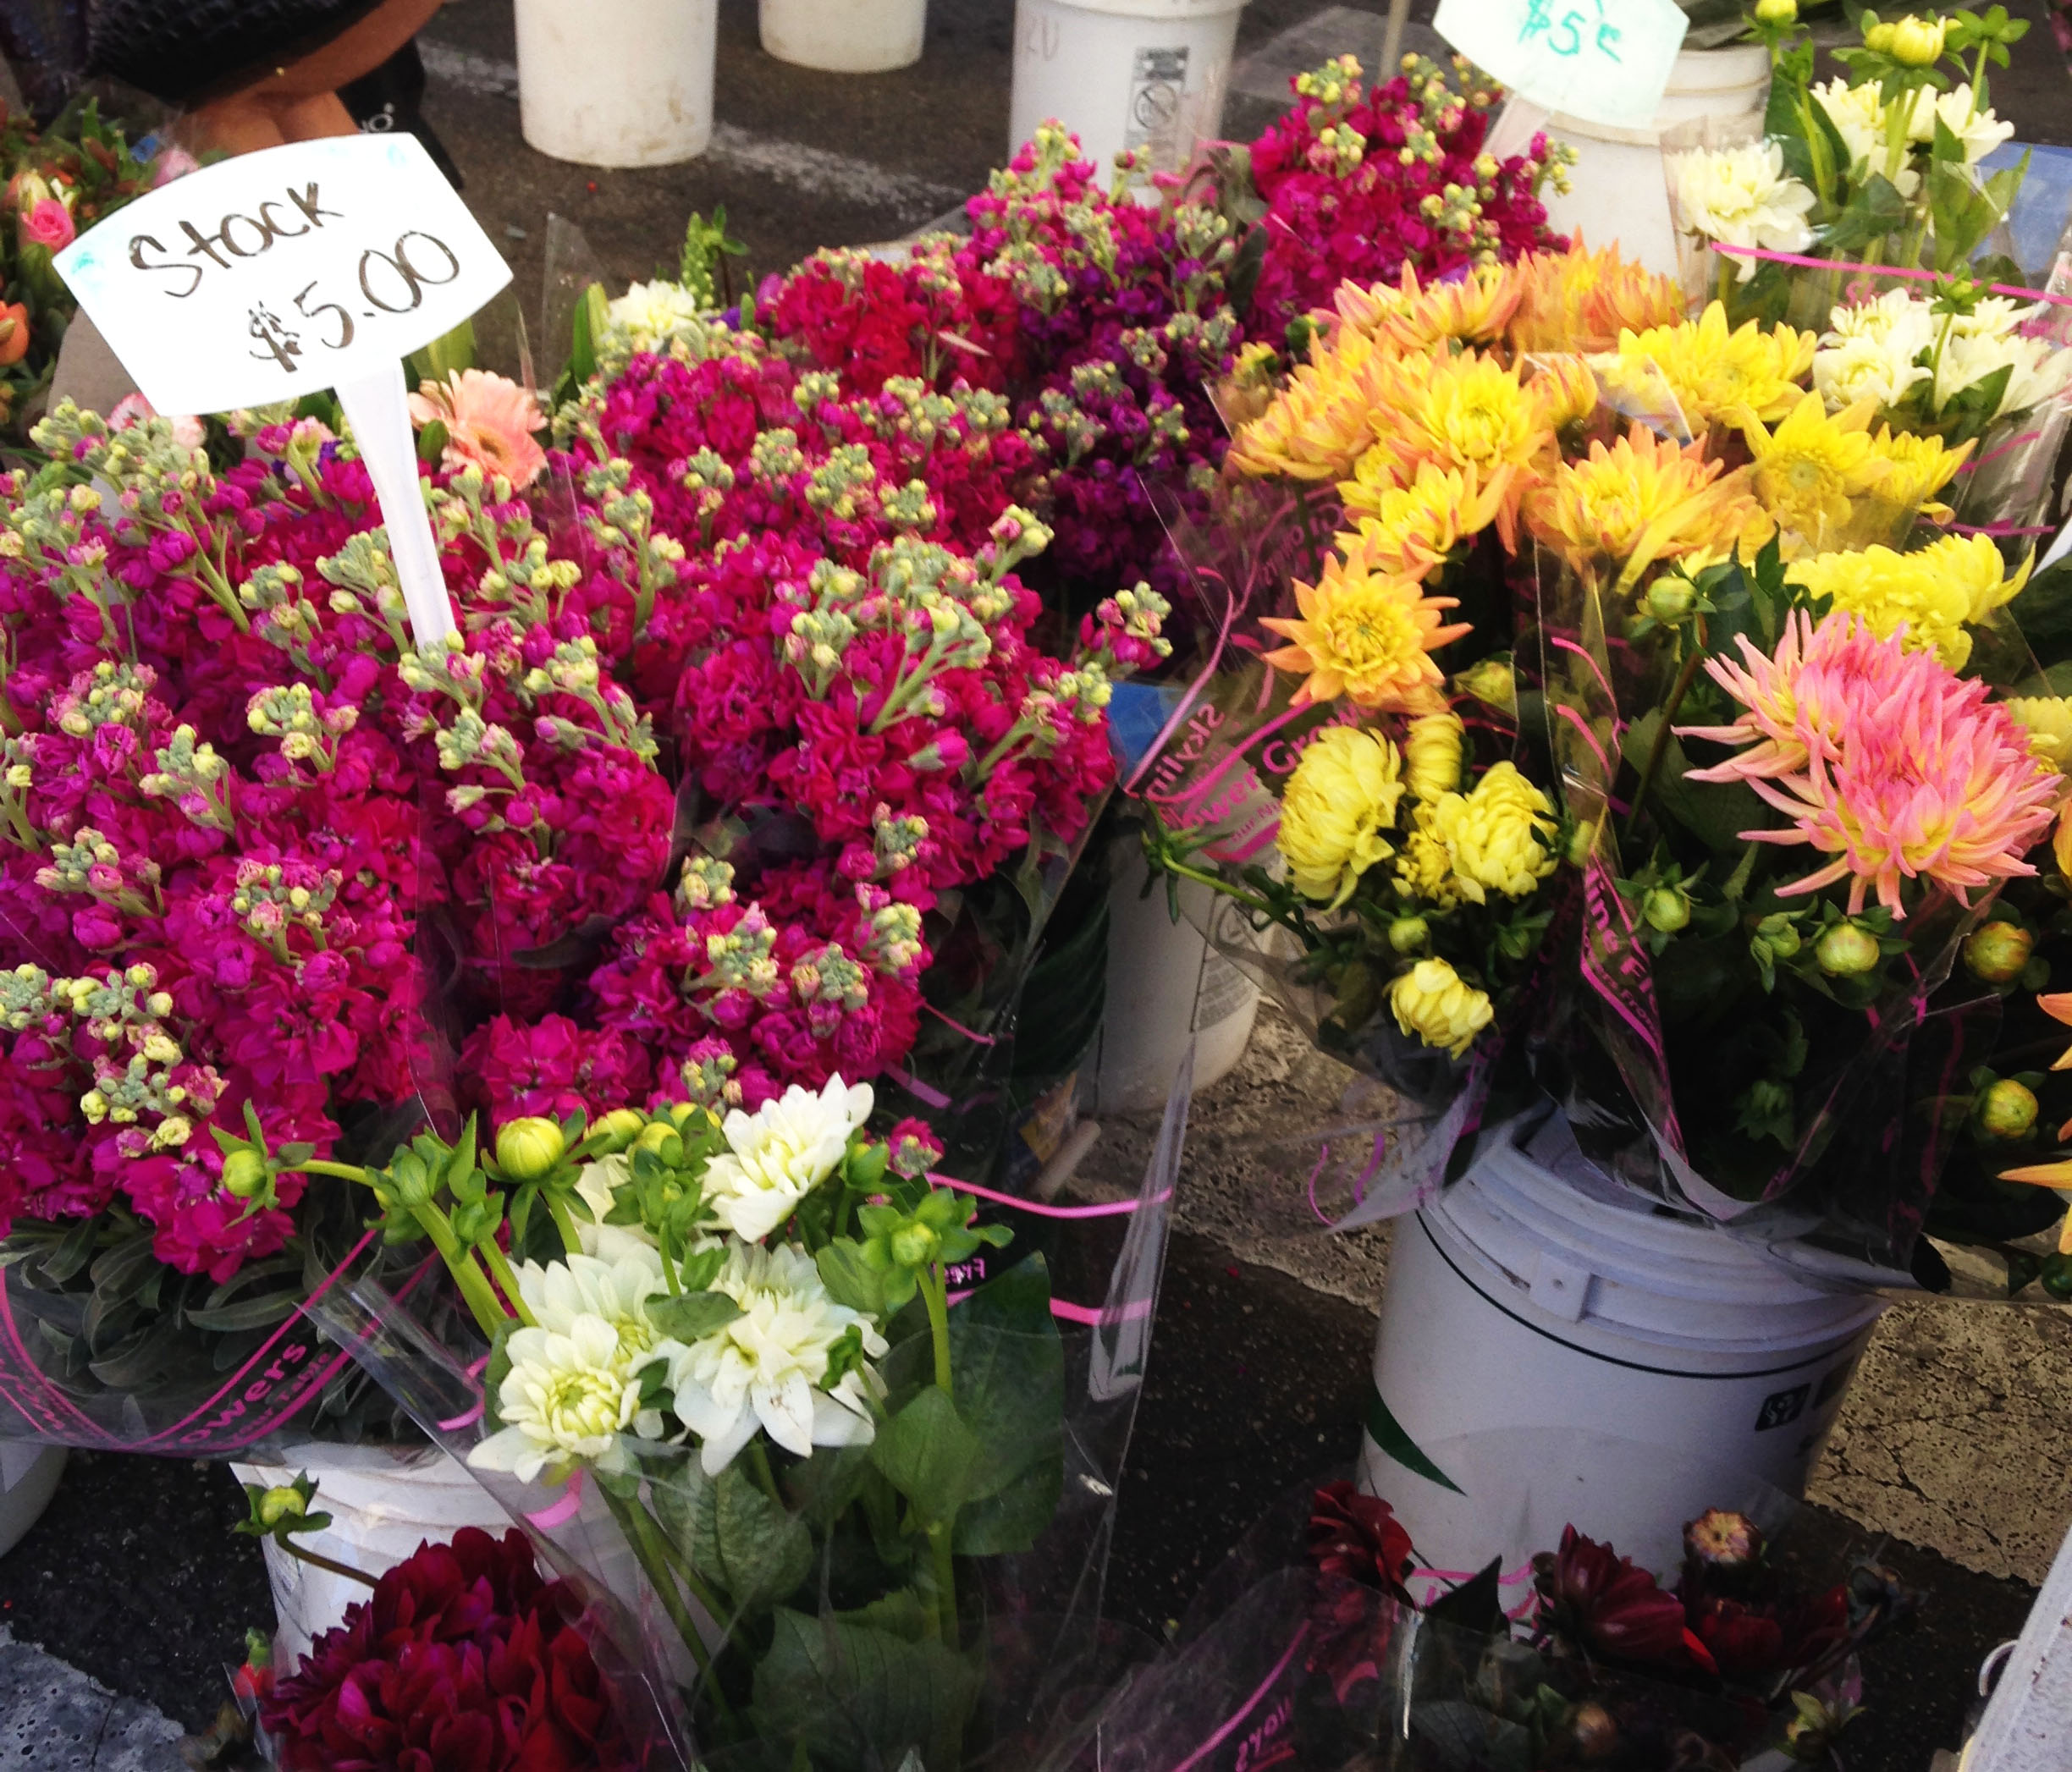 FLowers are always part of a Farmers Market journey.